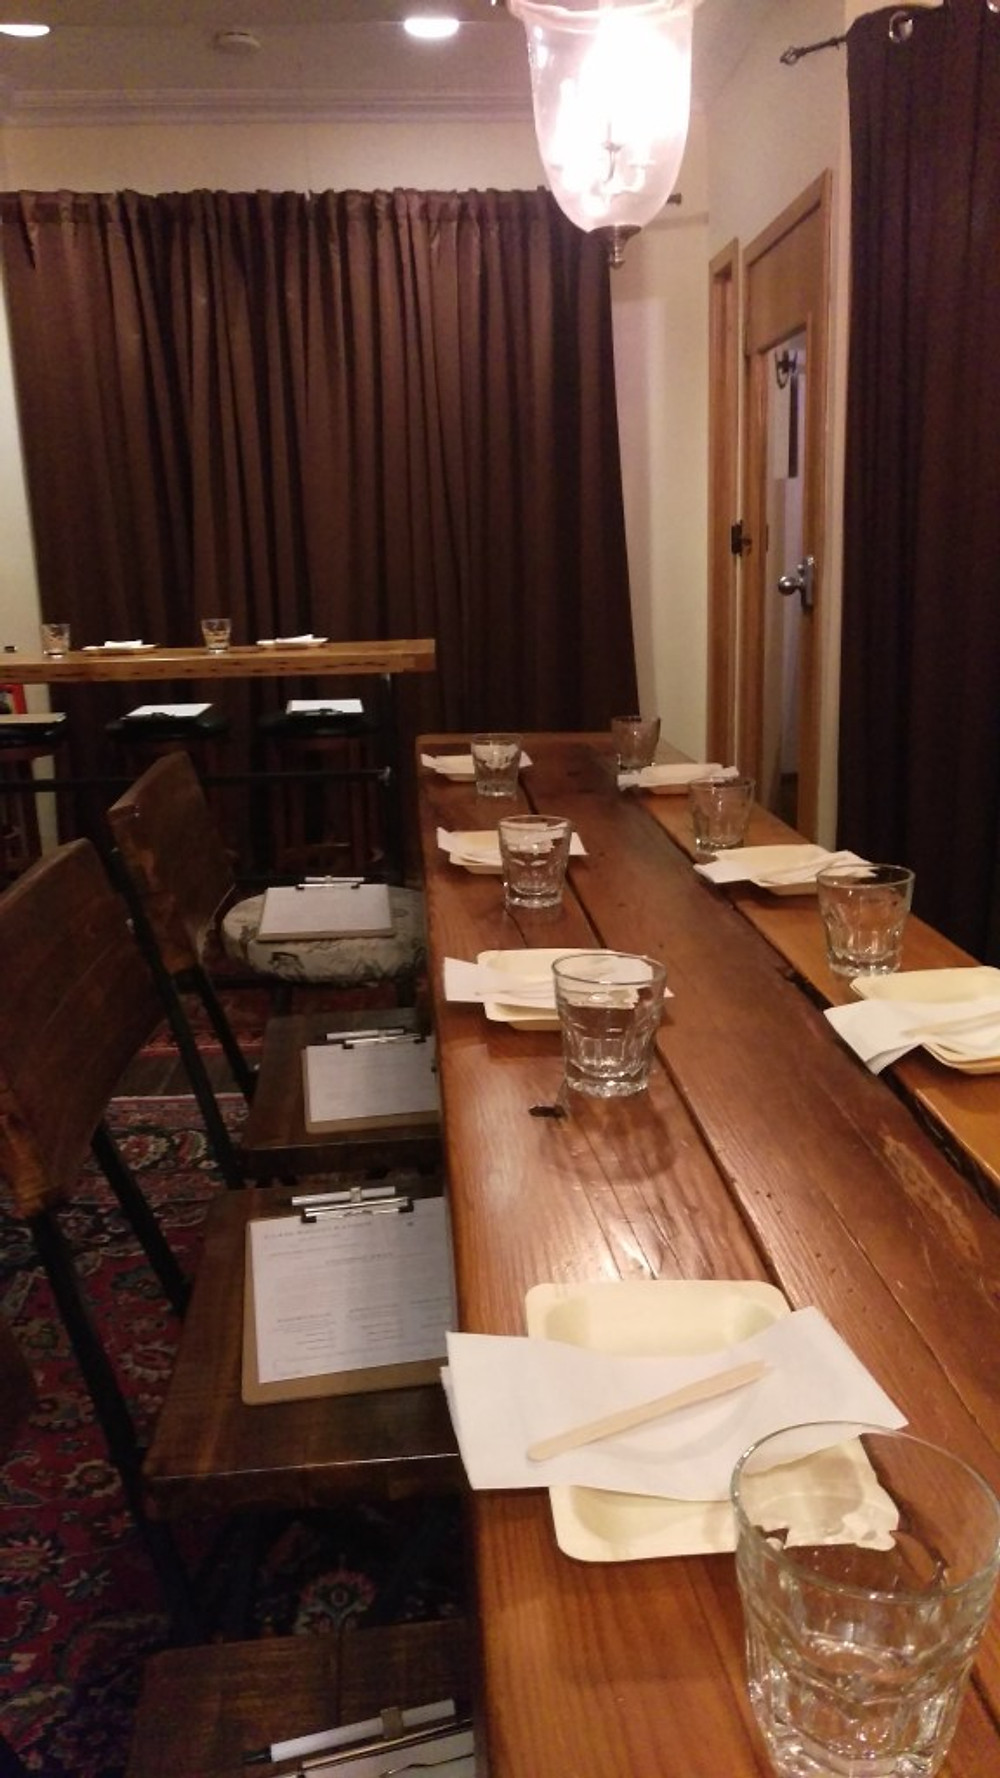 A picture of a long wooden table with several place setting set out.